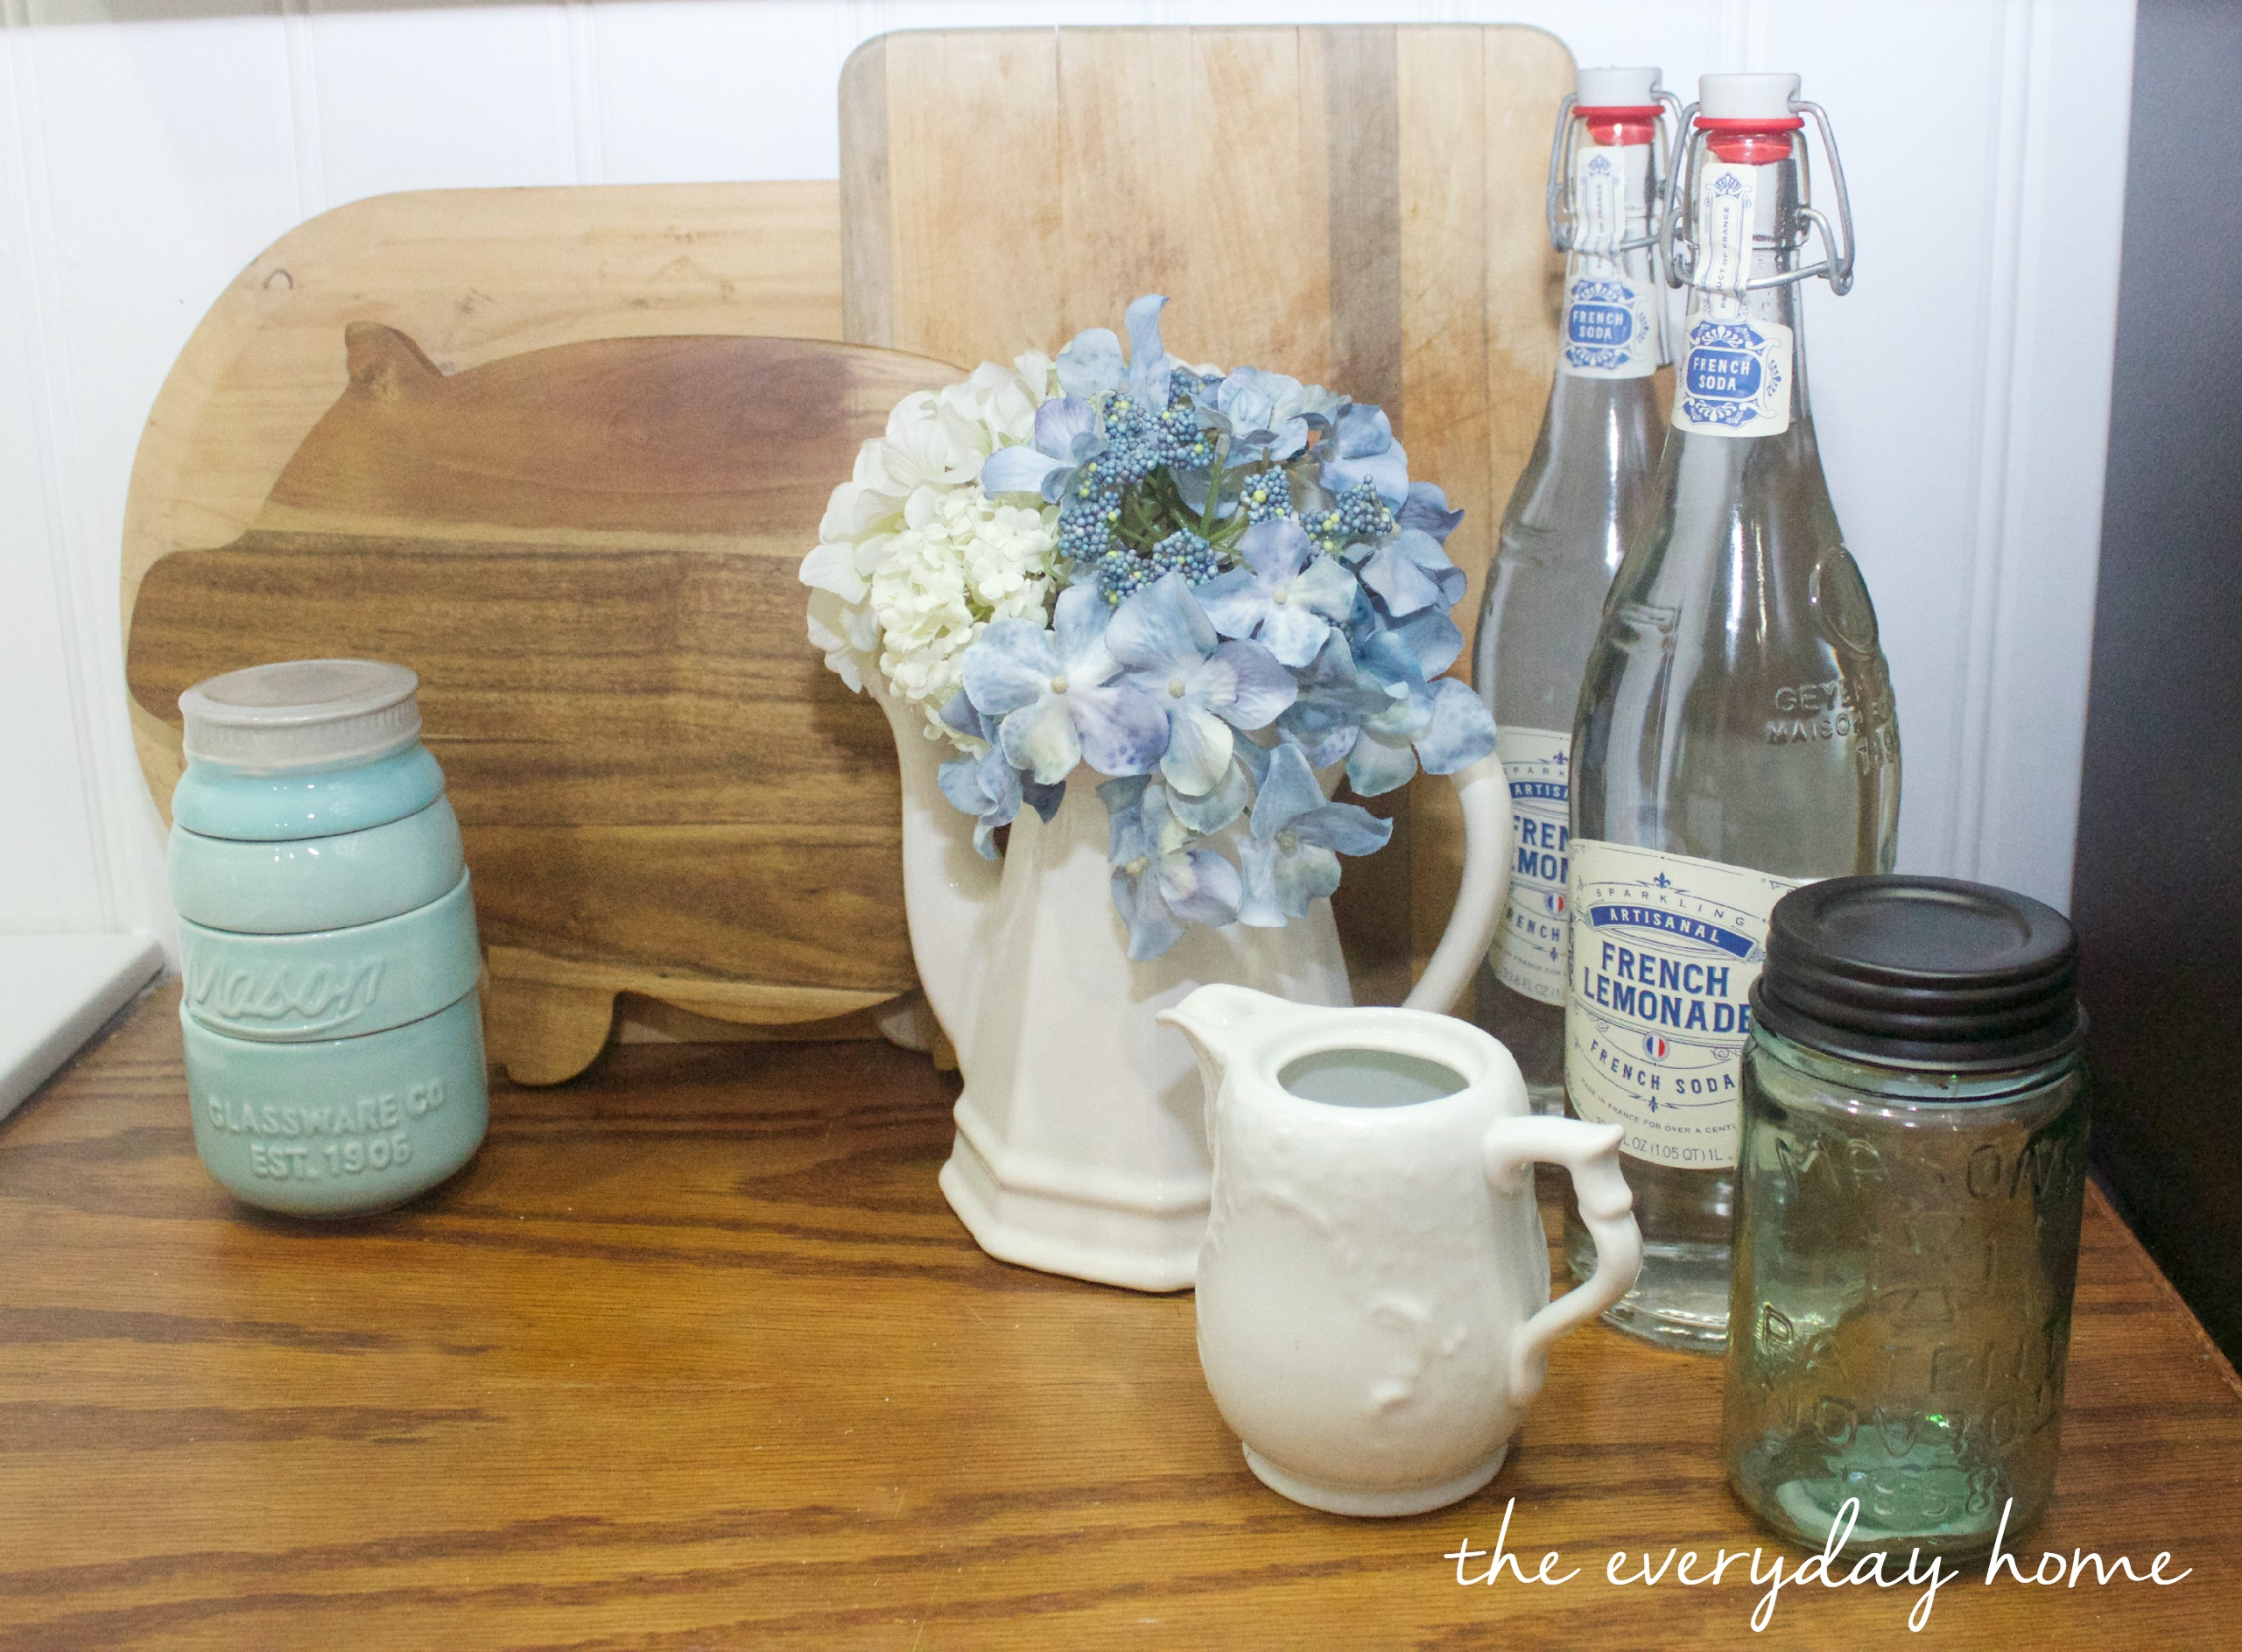 IKEA Farmhouse Sink The Everyday Home www evevrydayhomeblog com. IKEA Farmhouse Sink   The Everyday Home